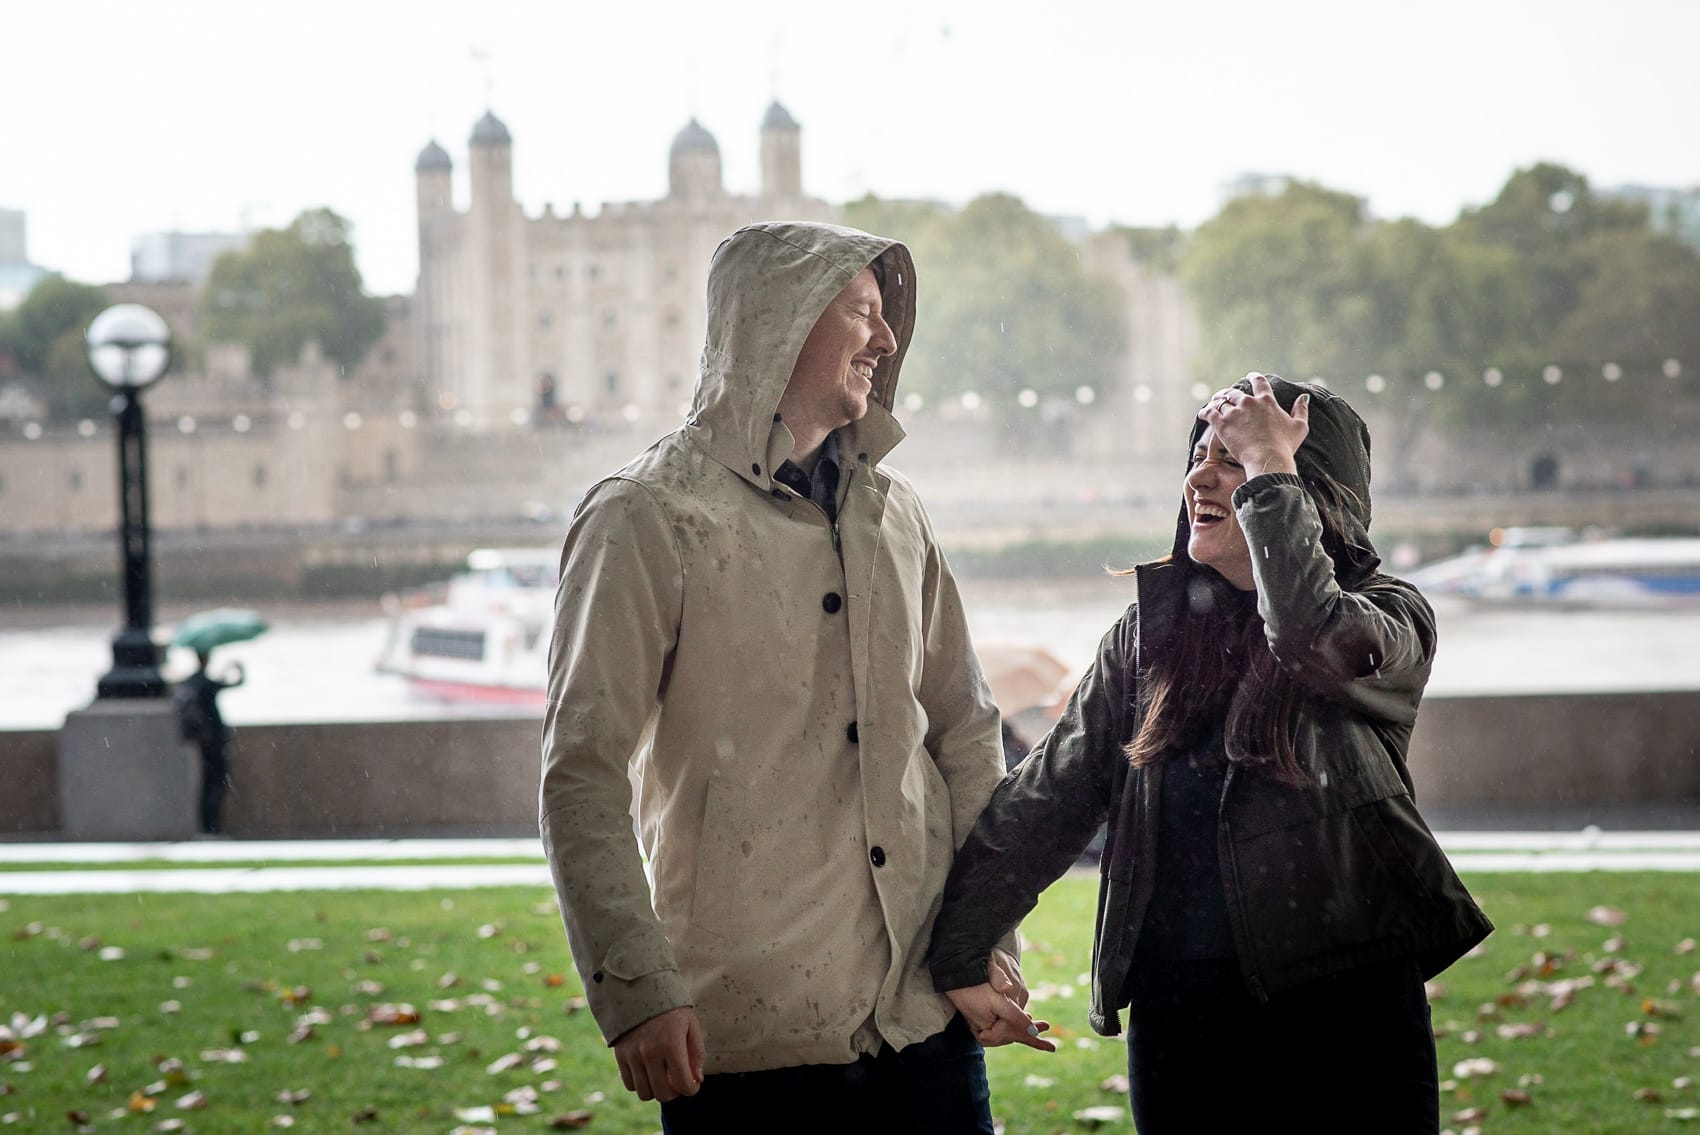 Couple laughing in the rain with the Tower of London in the background during their engagement shoot